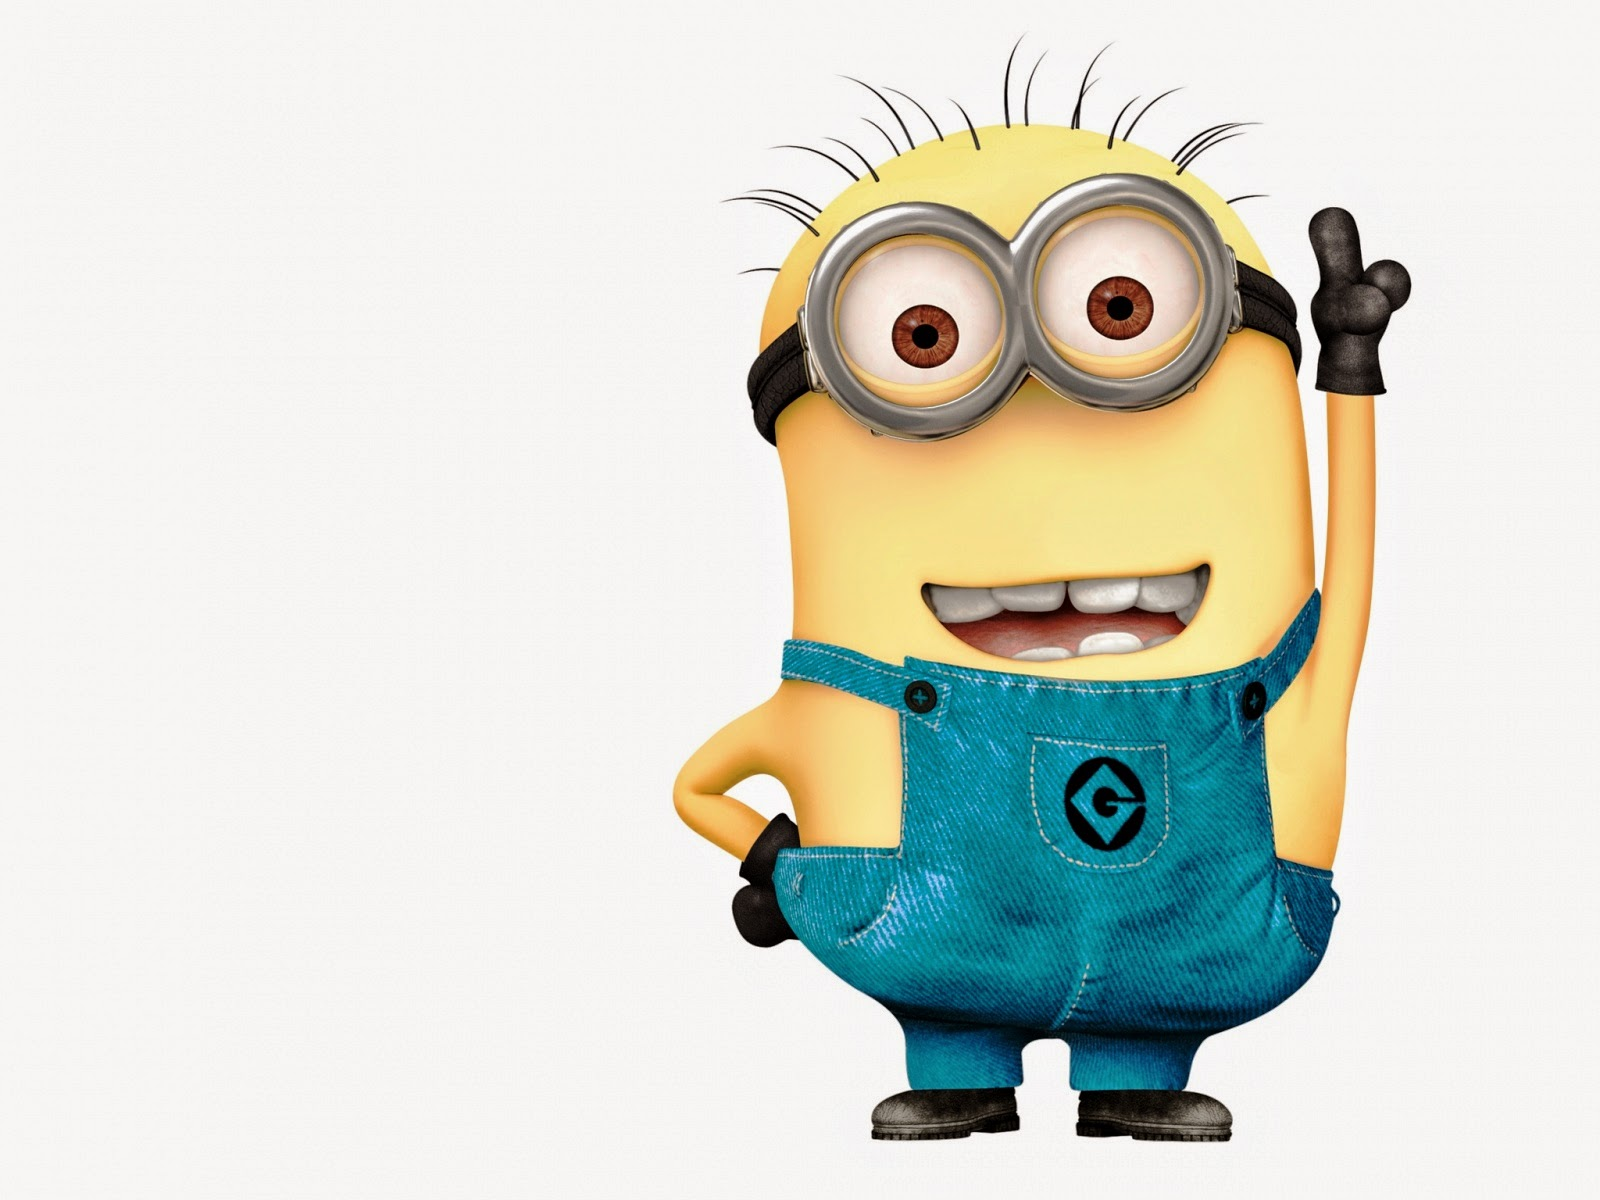 Despicable Me Minion Wallpaper For Desktop 1600 x 1200